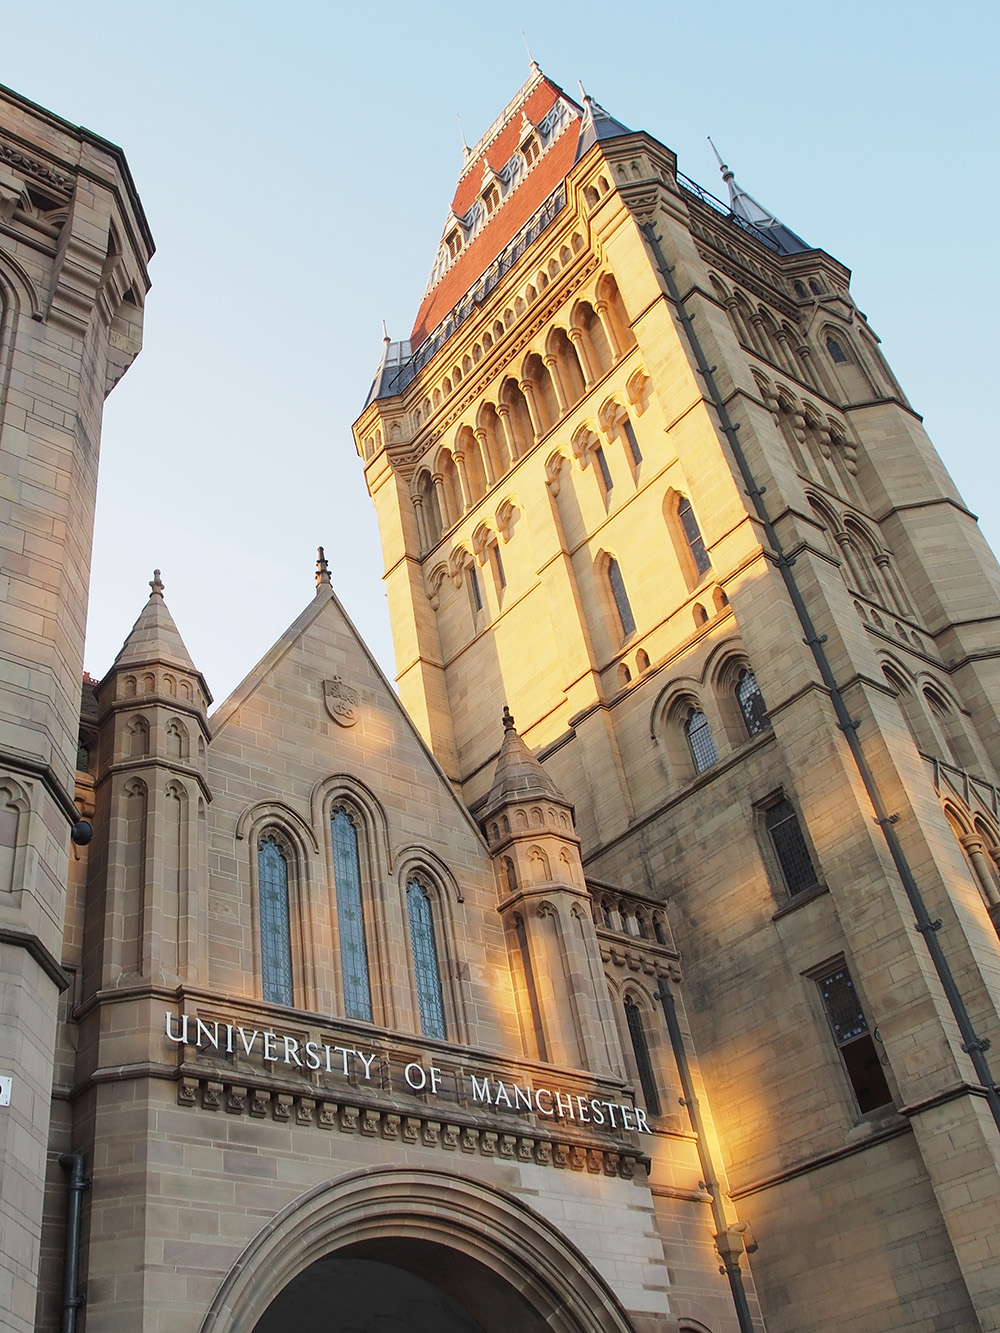 Case Study: The University of Manchester